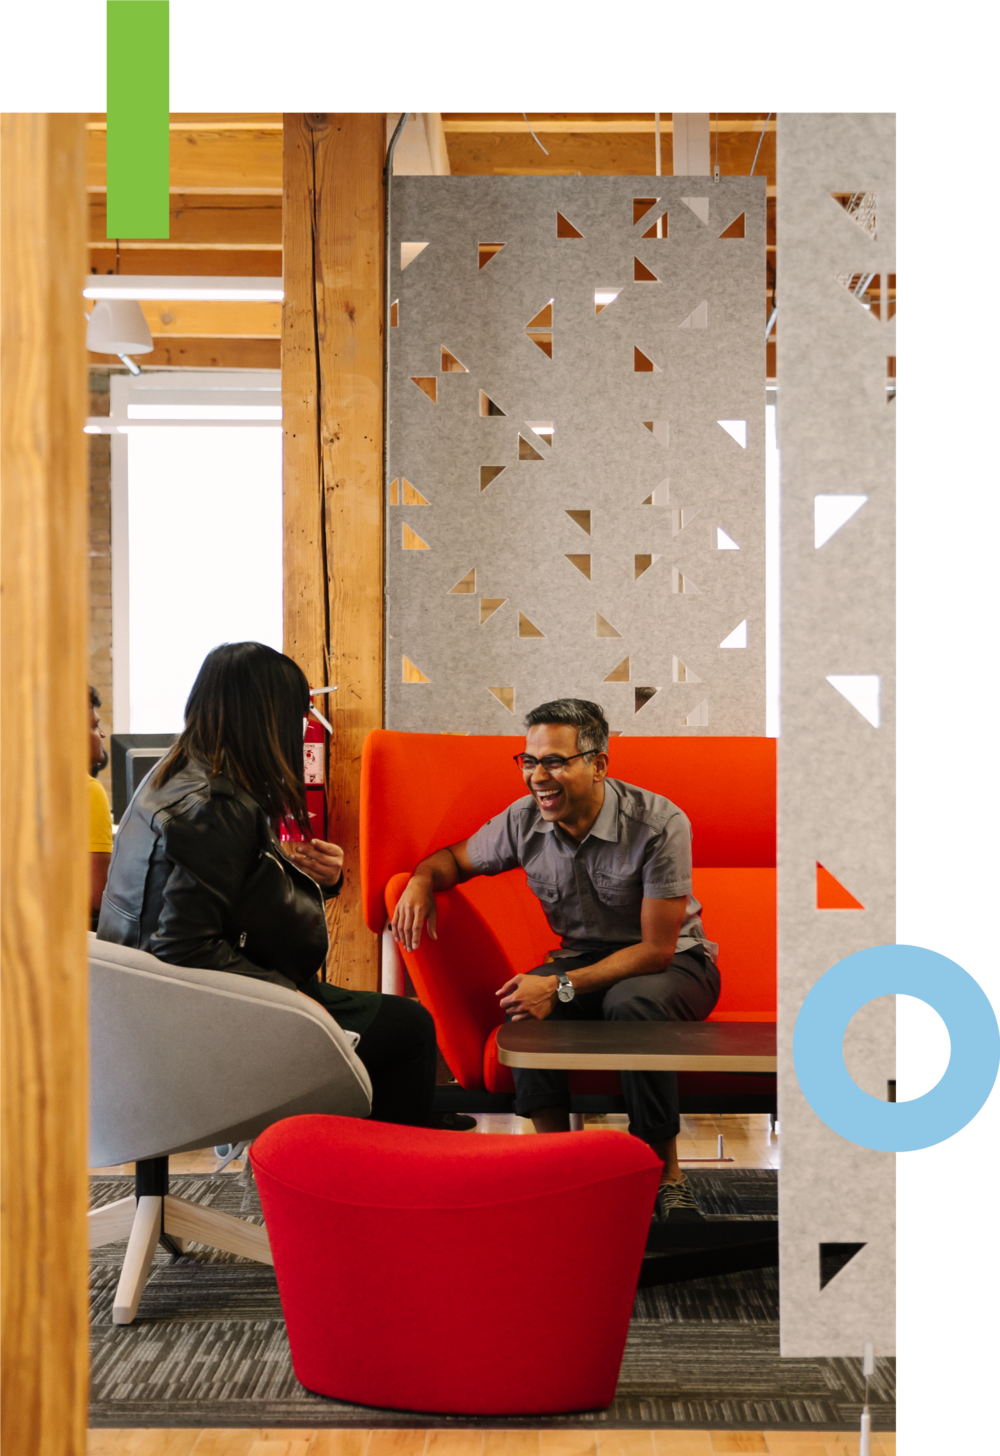 We're growing - and we're looking for driven, passionate and diverse people to join us on this journey. If you thrive in an environment that values impact, mastery and autonomy, we think you'll like it here.Open roles ➝